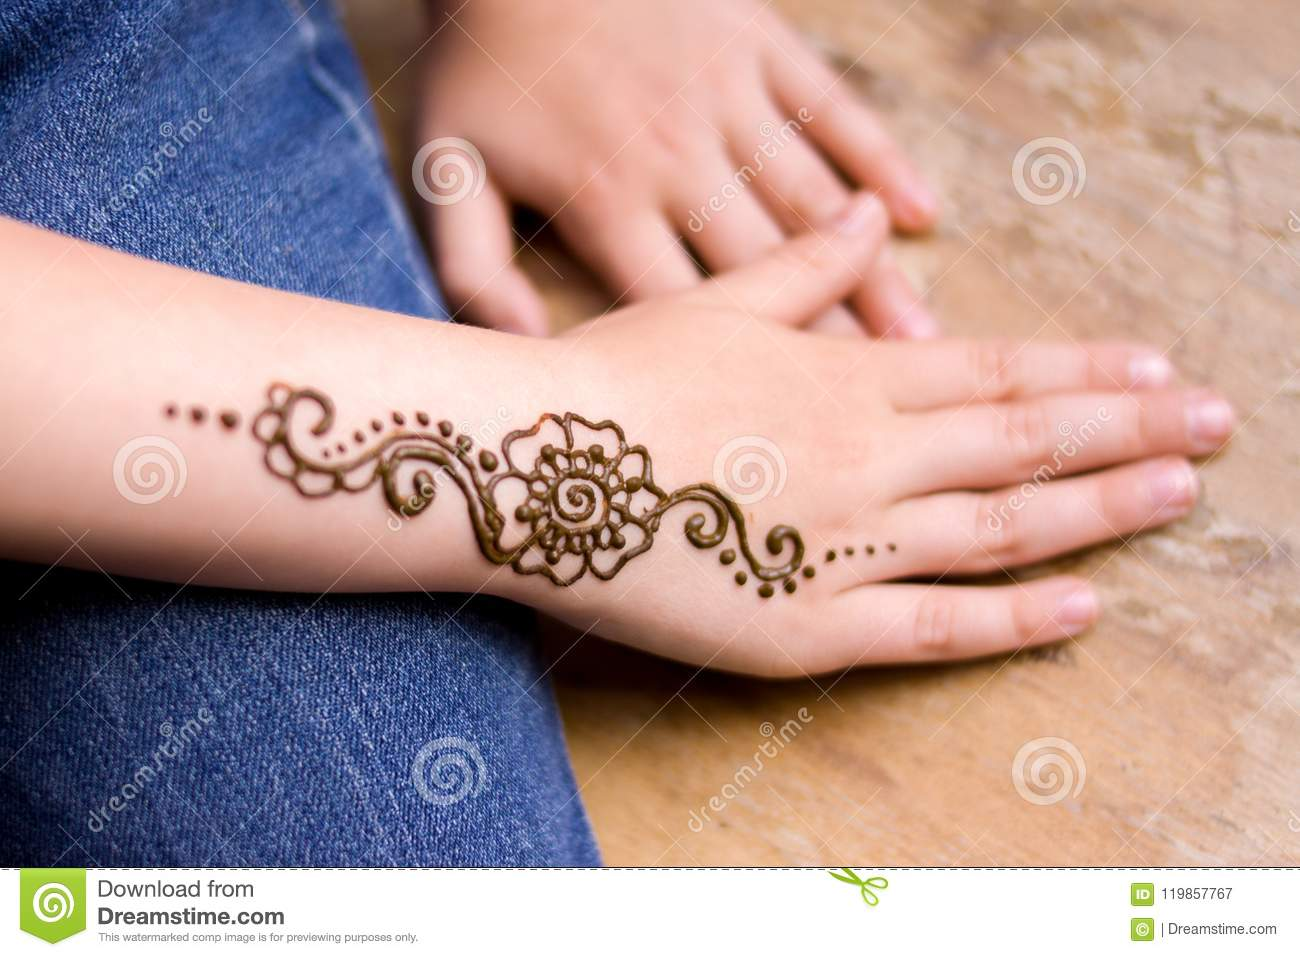 bde1c43de58ef beauty concept - henna tattoo on small girl hand. Mehndi is traditional  Indian decorative art. Close-up, overhead view